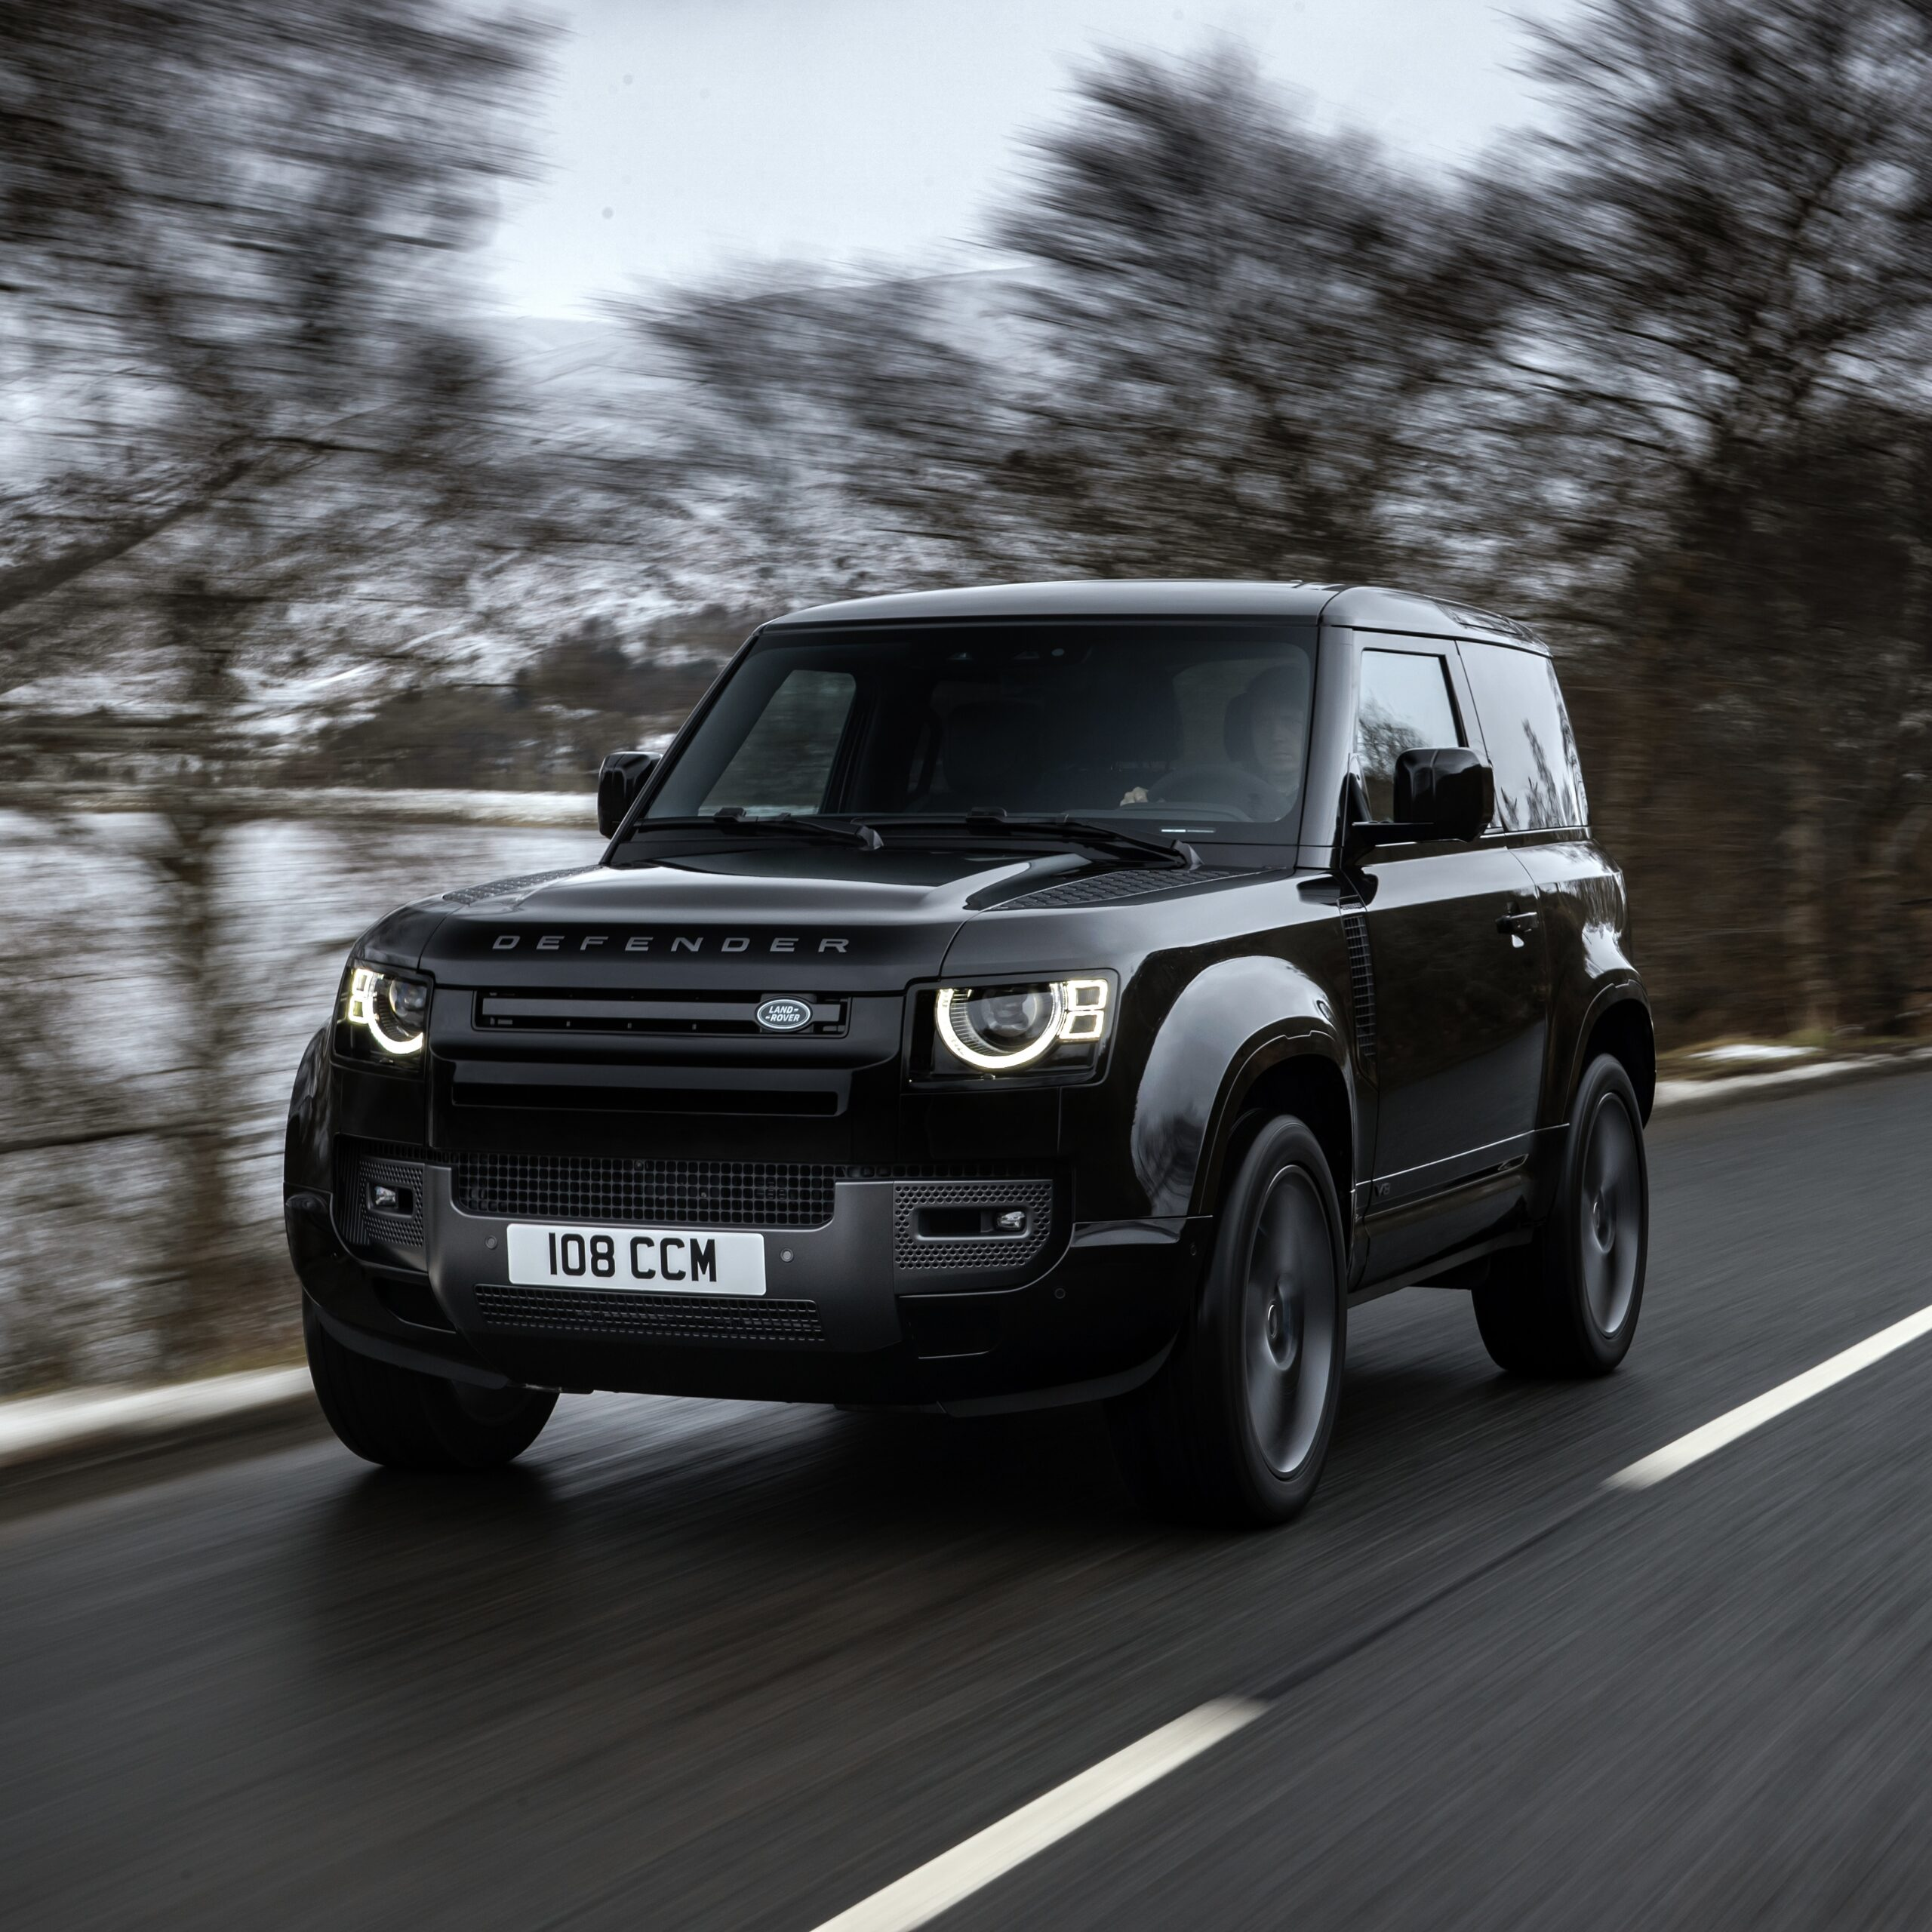 Land Rover Defender v8 90 for use by 360 Magazine